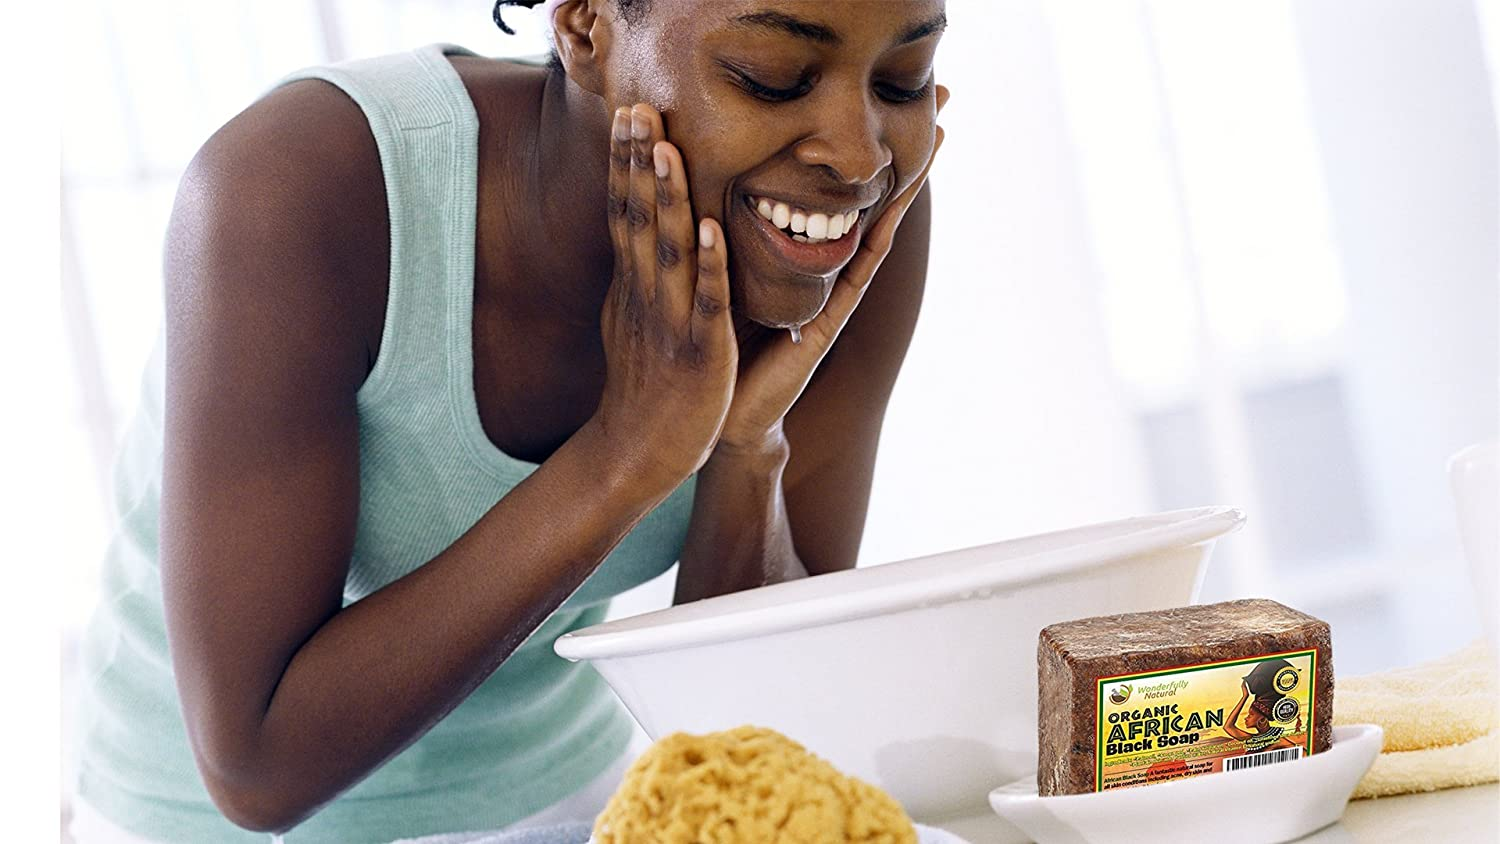 The Best African Black Soap for Flawless, Even-Toned Skin